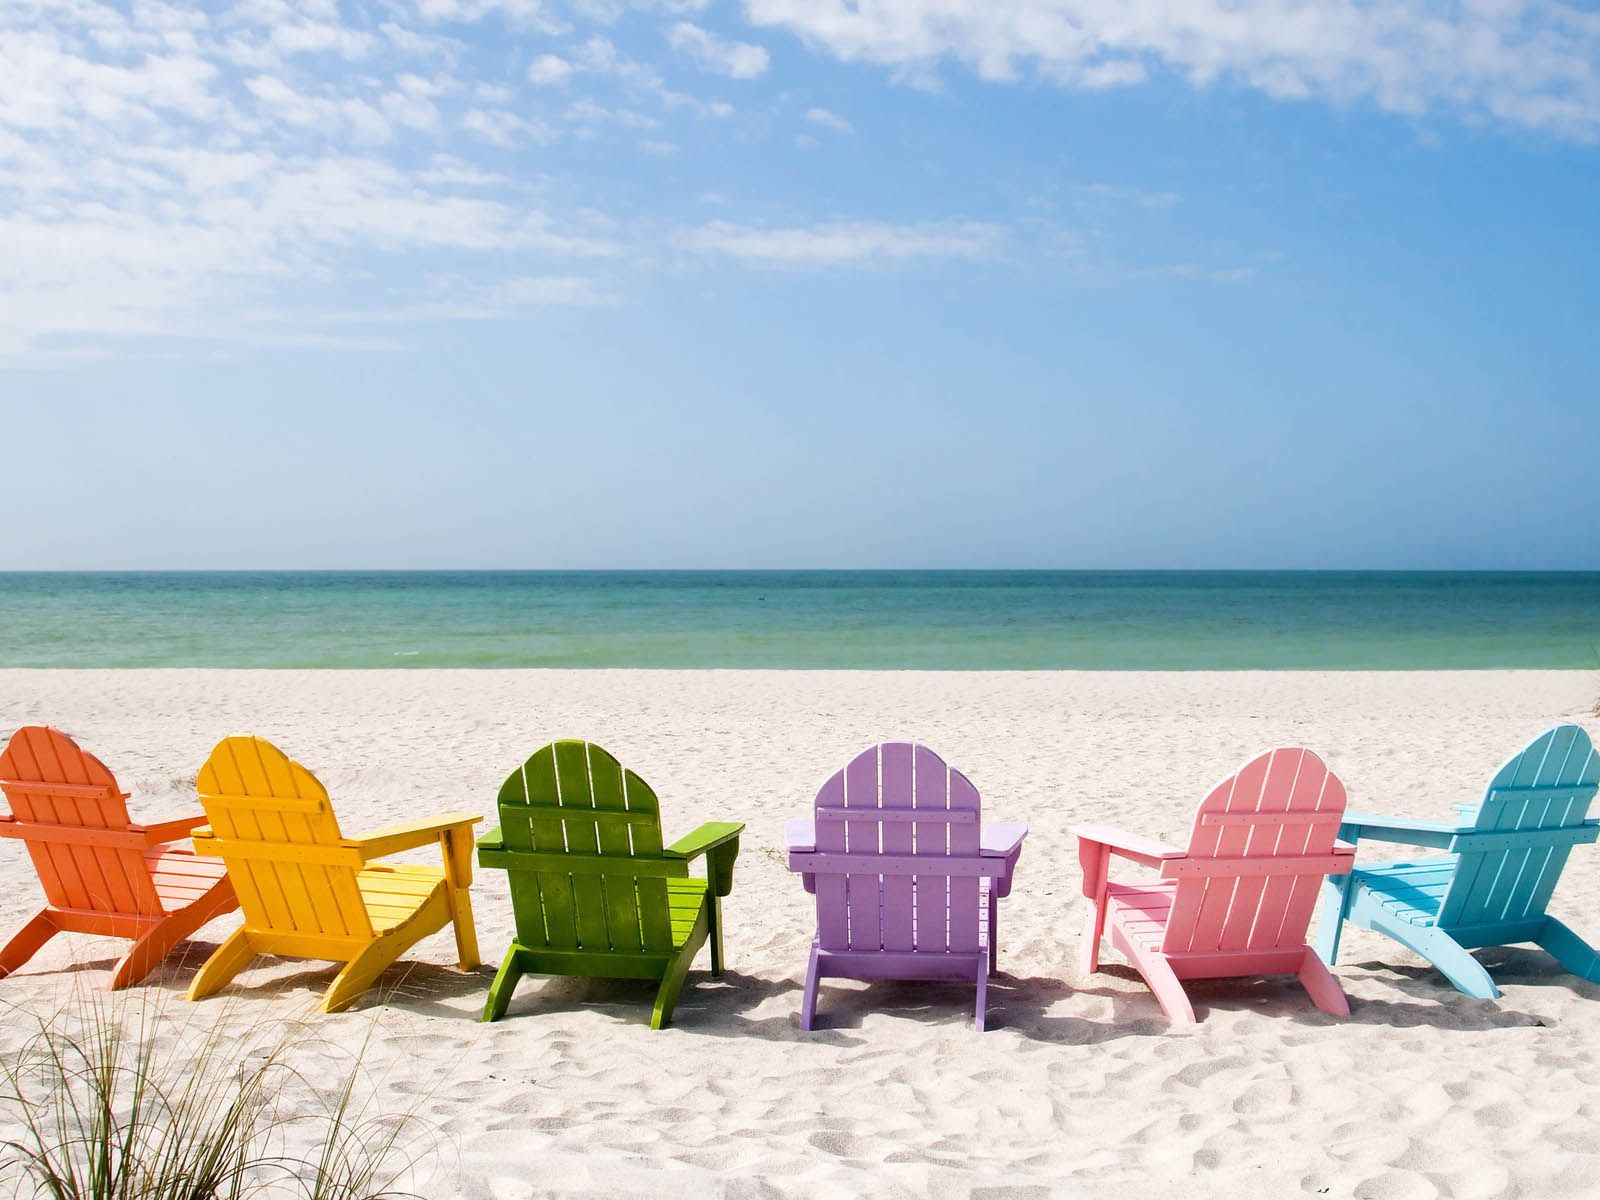 write kappa alpha theta on the chairs background beach pictures